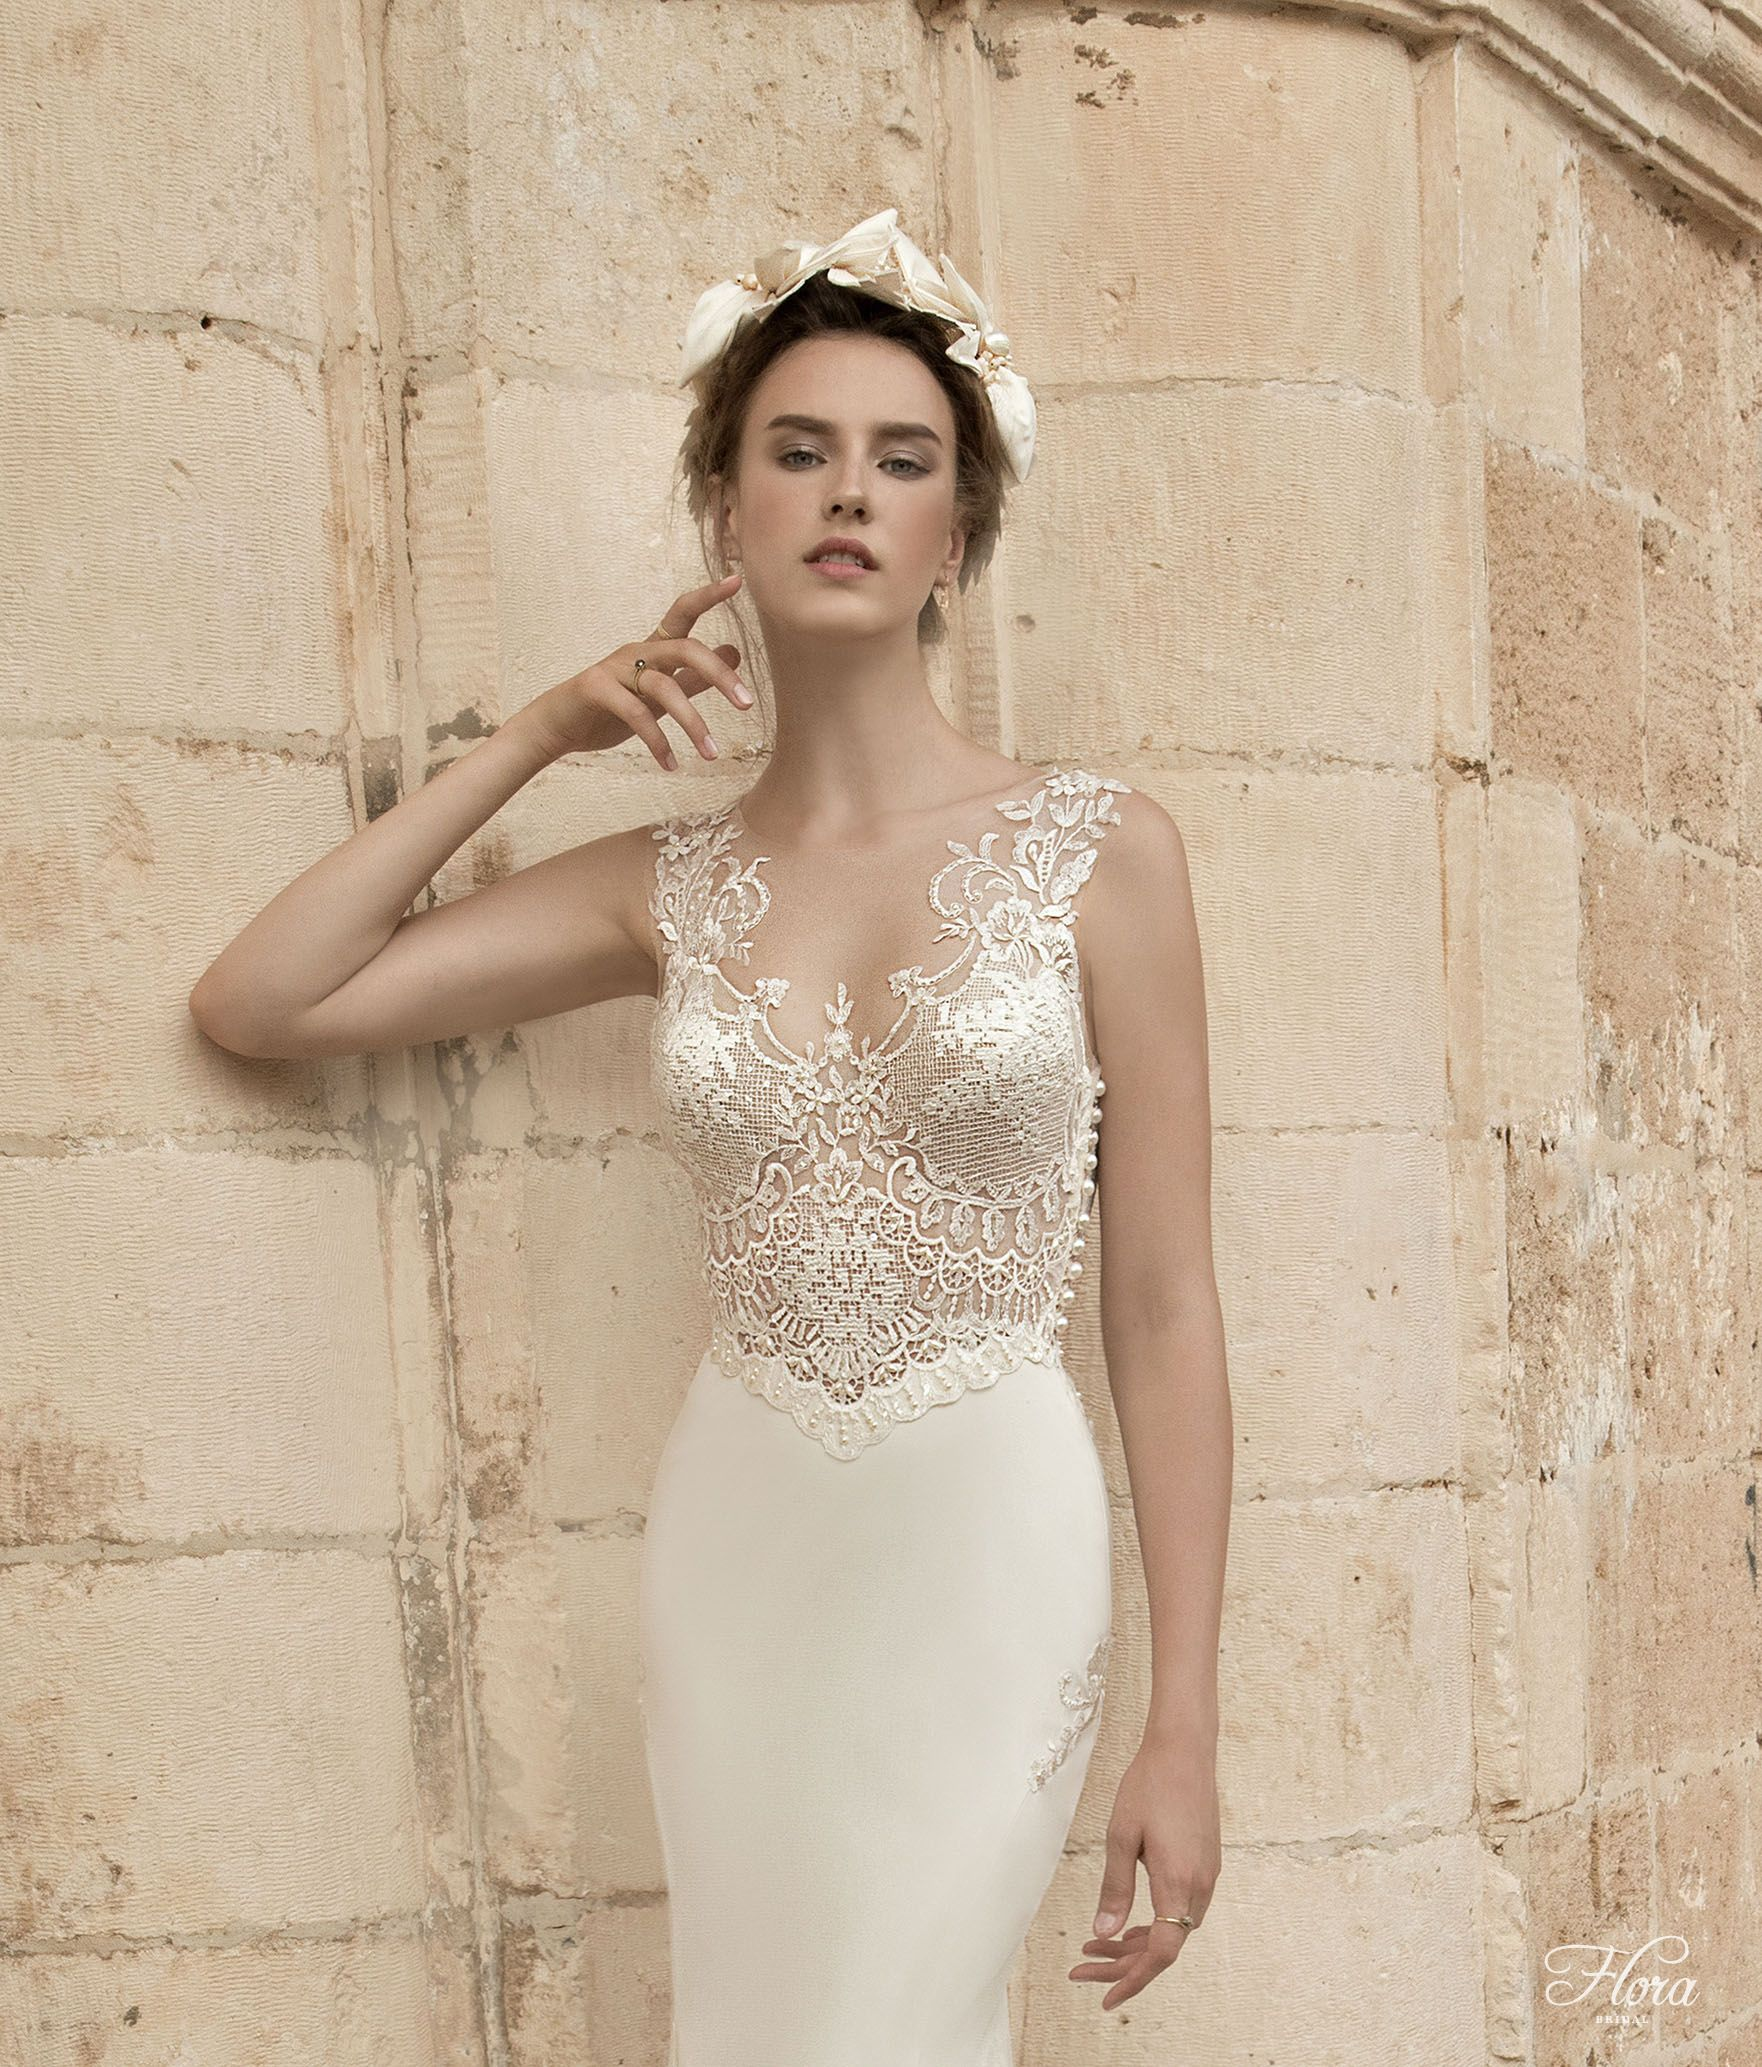 Flora 2015 wedding gown vik sheath silhouette wedding flora bridal stocked at churchgate porter ombrellifo Image collections